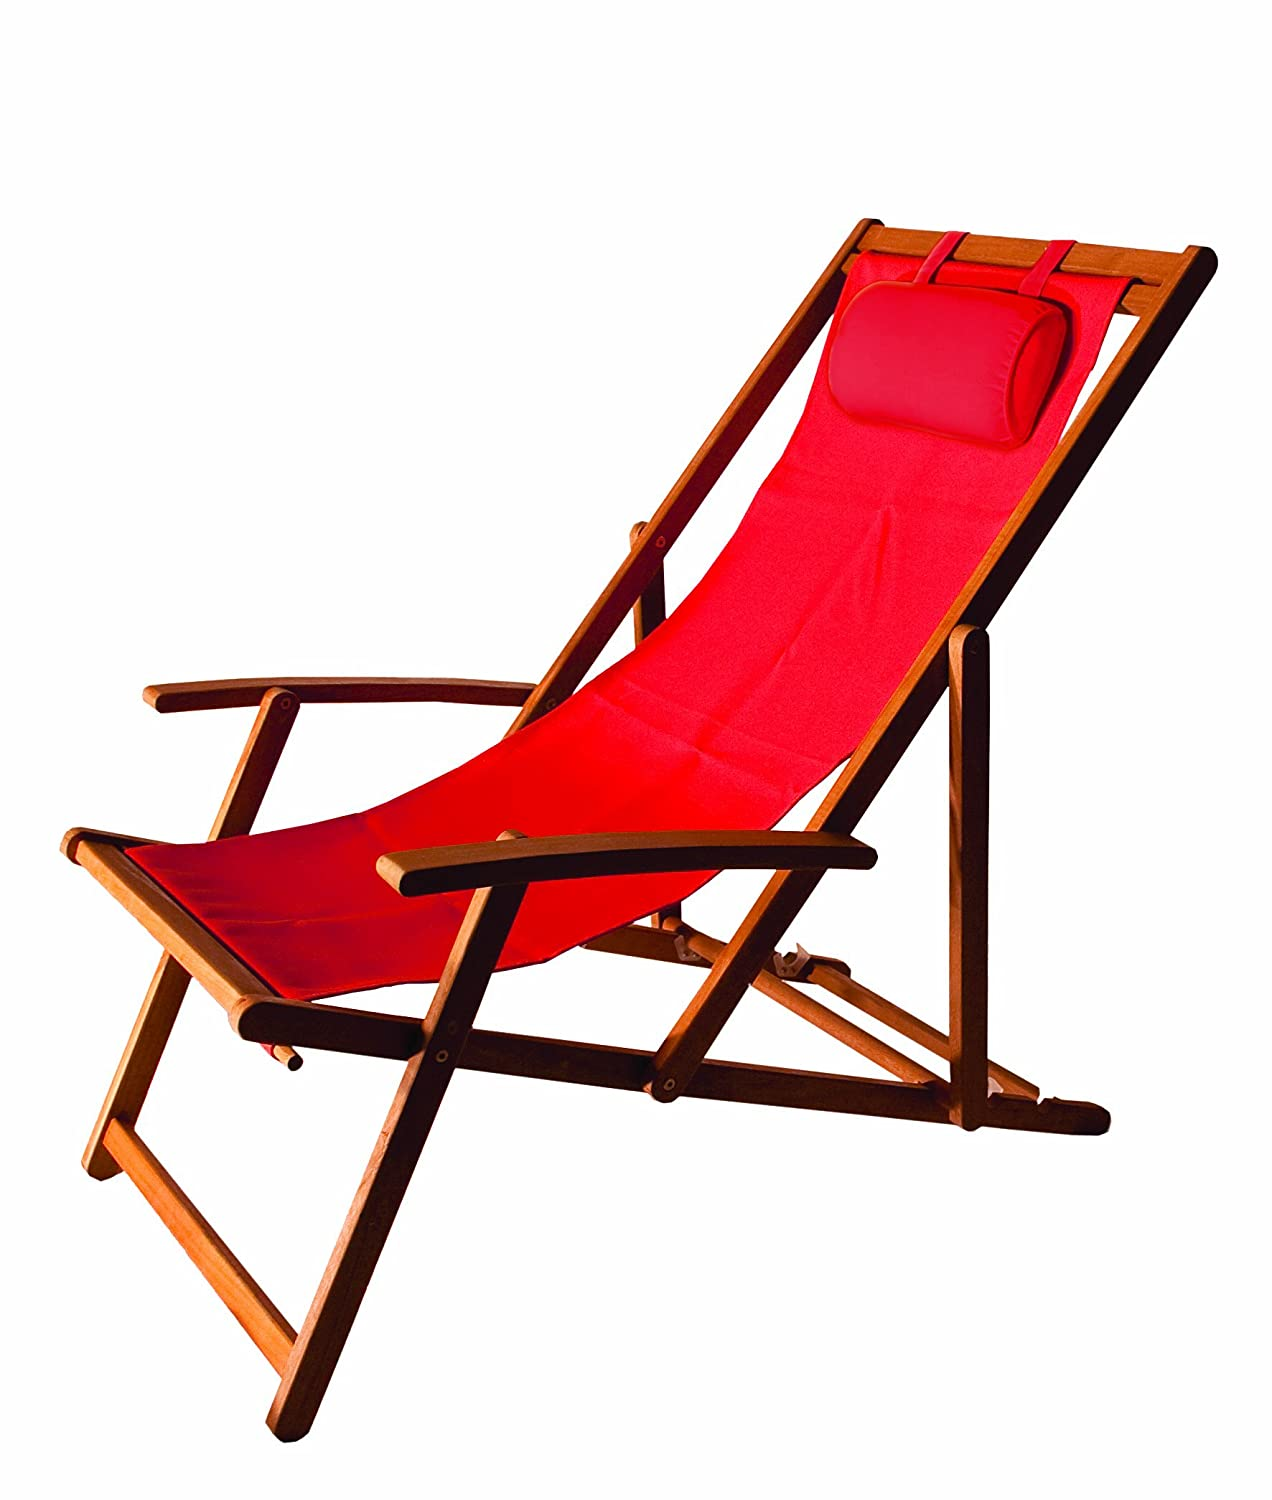 Amazon.com: Arboria 880.1303 Foldable Outdoor Wood Sling Chair Eucalyptus  Hardwood, Red: Garden & Outdoor - Amazon.com: Arboria 880.1303 Foldable Outdoor Wood Sling Chair